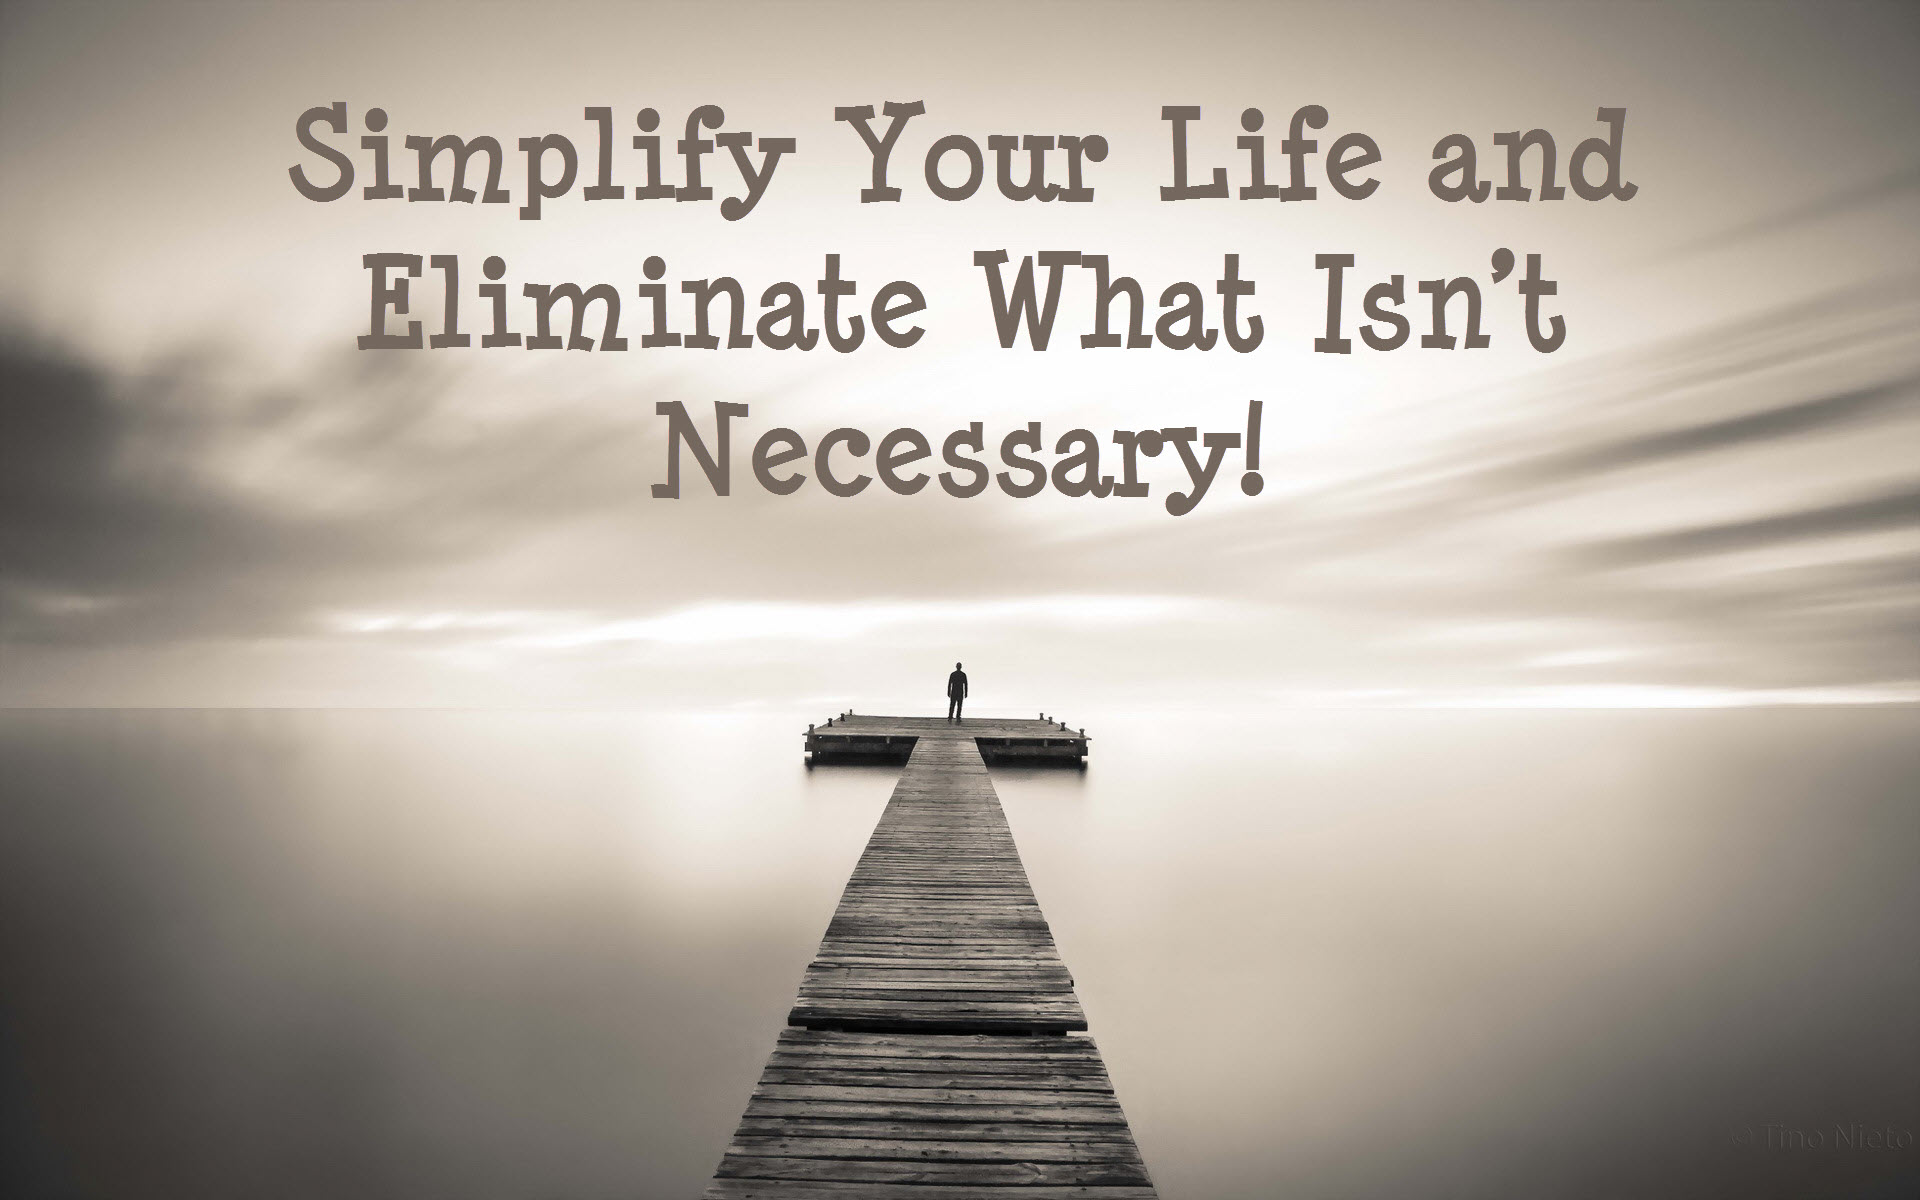 Simplify your life week